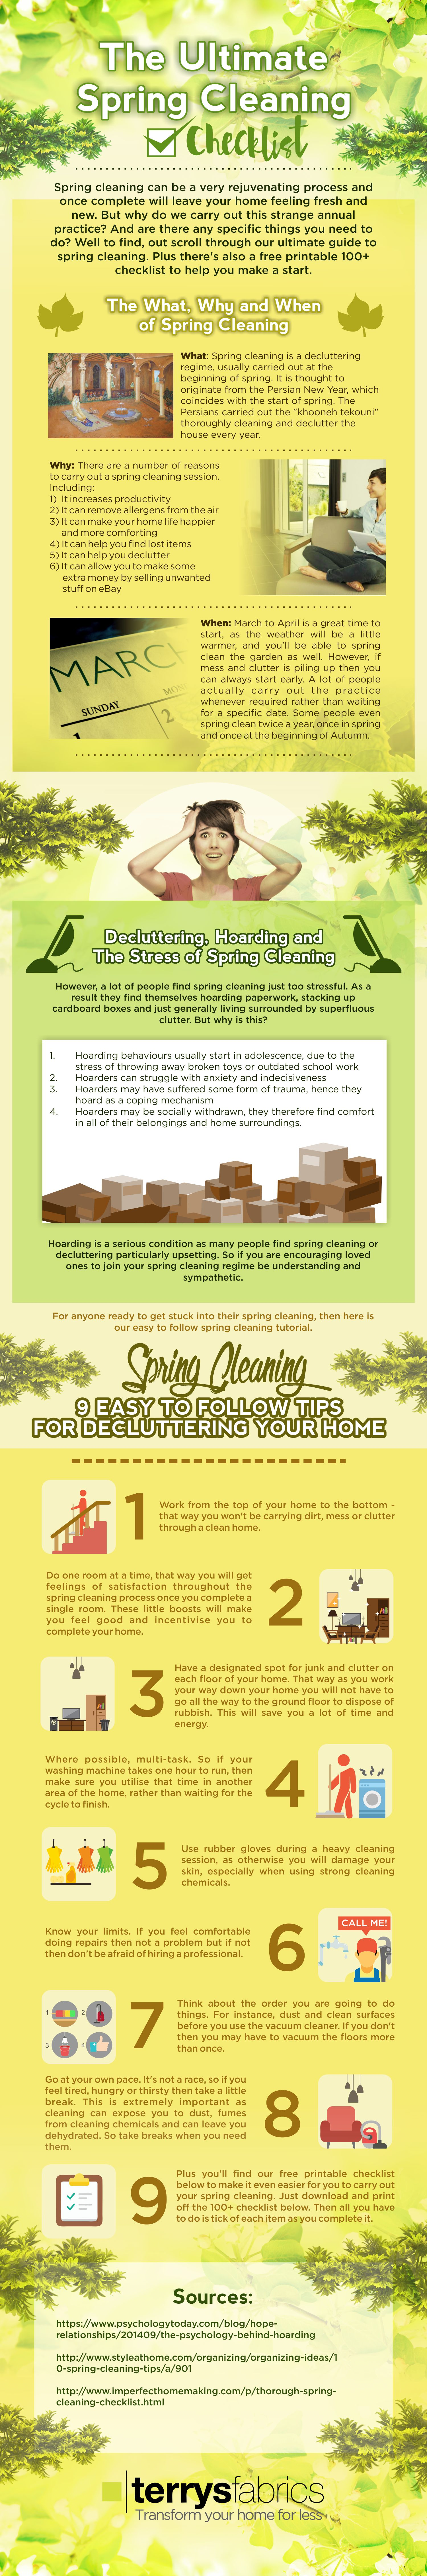 Ultimate Spring Cleaning Checklist Infographic